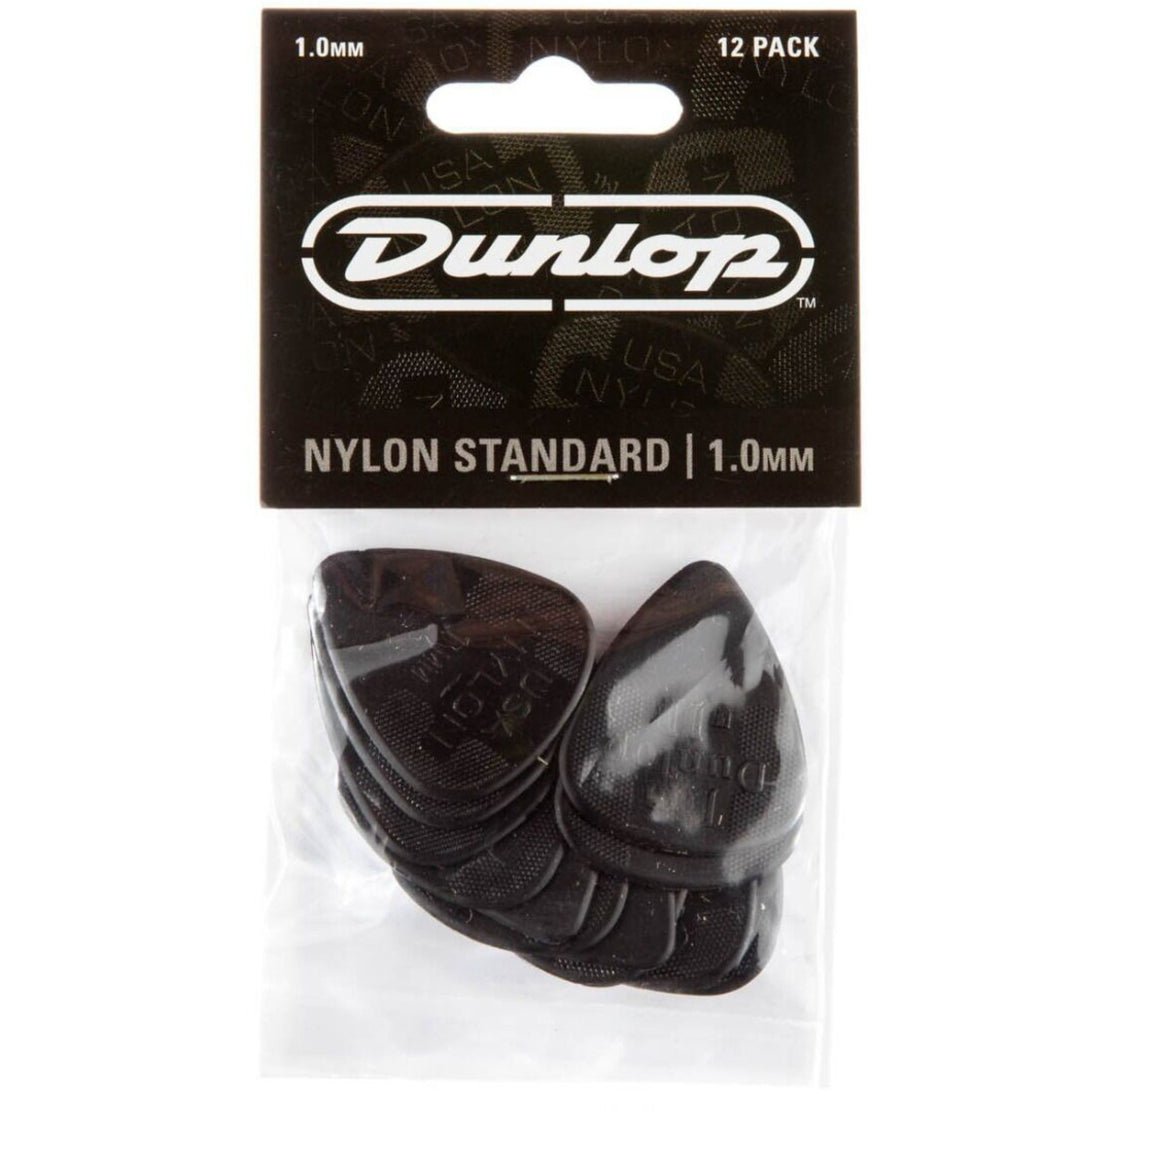 Dunlop 44p10 Nylon Standard 1.0 Black Guitar Picks - 12 PACK